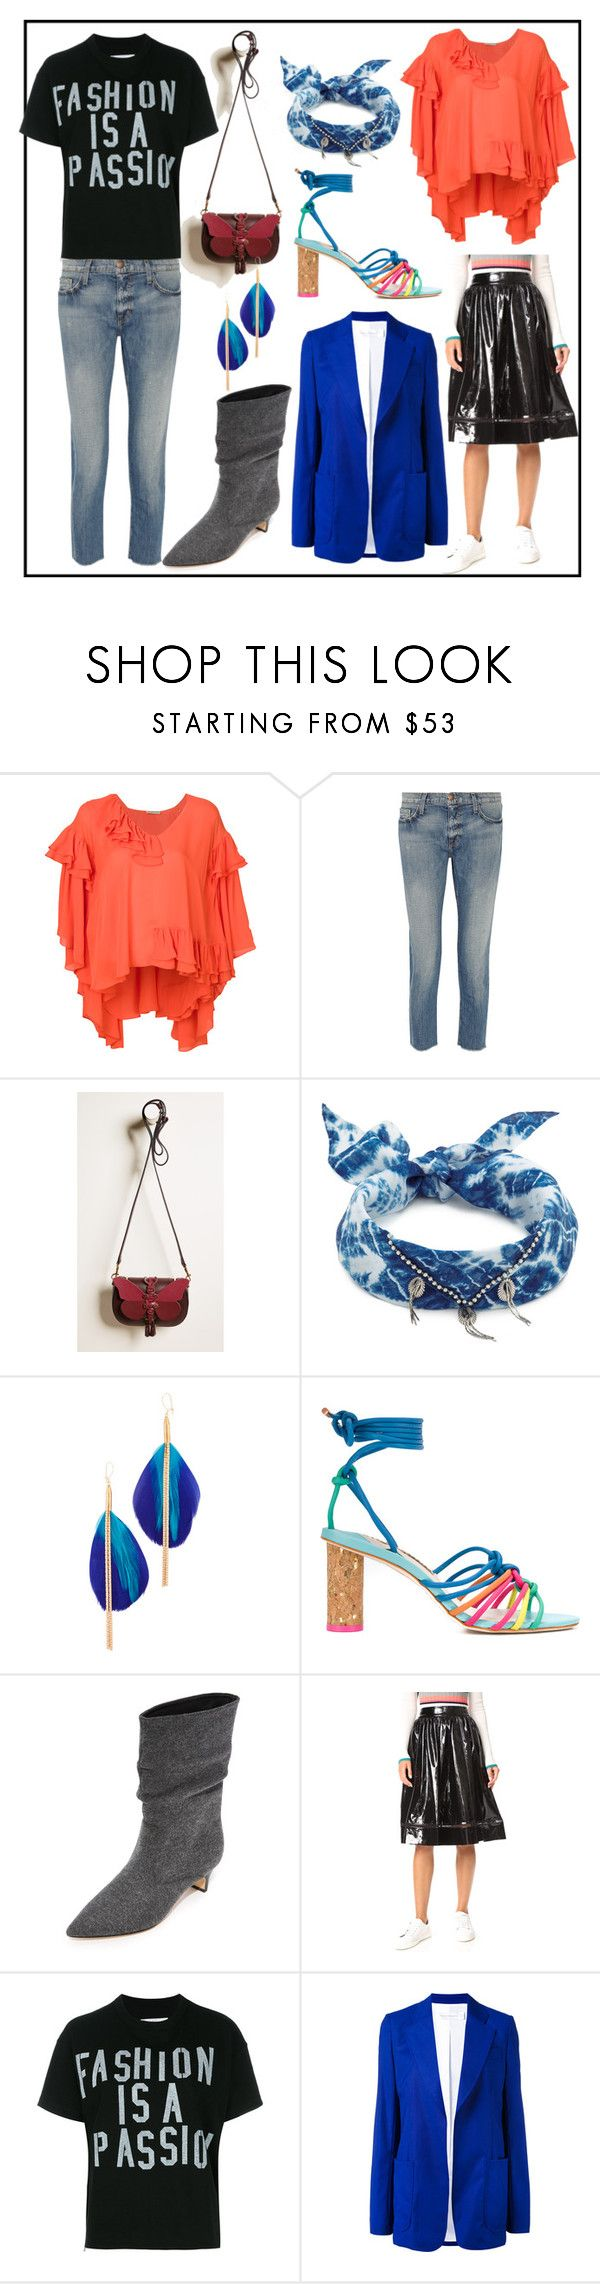 """Untitled #1034"" by racheal-taylor ❤ liked on Polyvore featuring Emilio Pucci, Current/Elliott, Anya Hindmarch, DANNIJO, Serefina, Sophia Webster, Sigerson Morrison, Alice + Olivia, Sacai and Victoria Beckham"